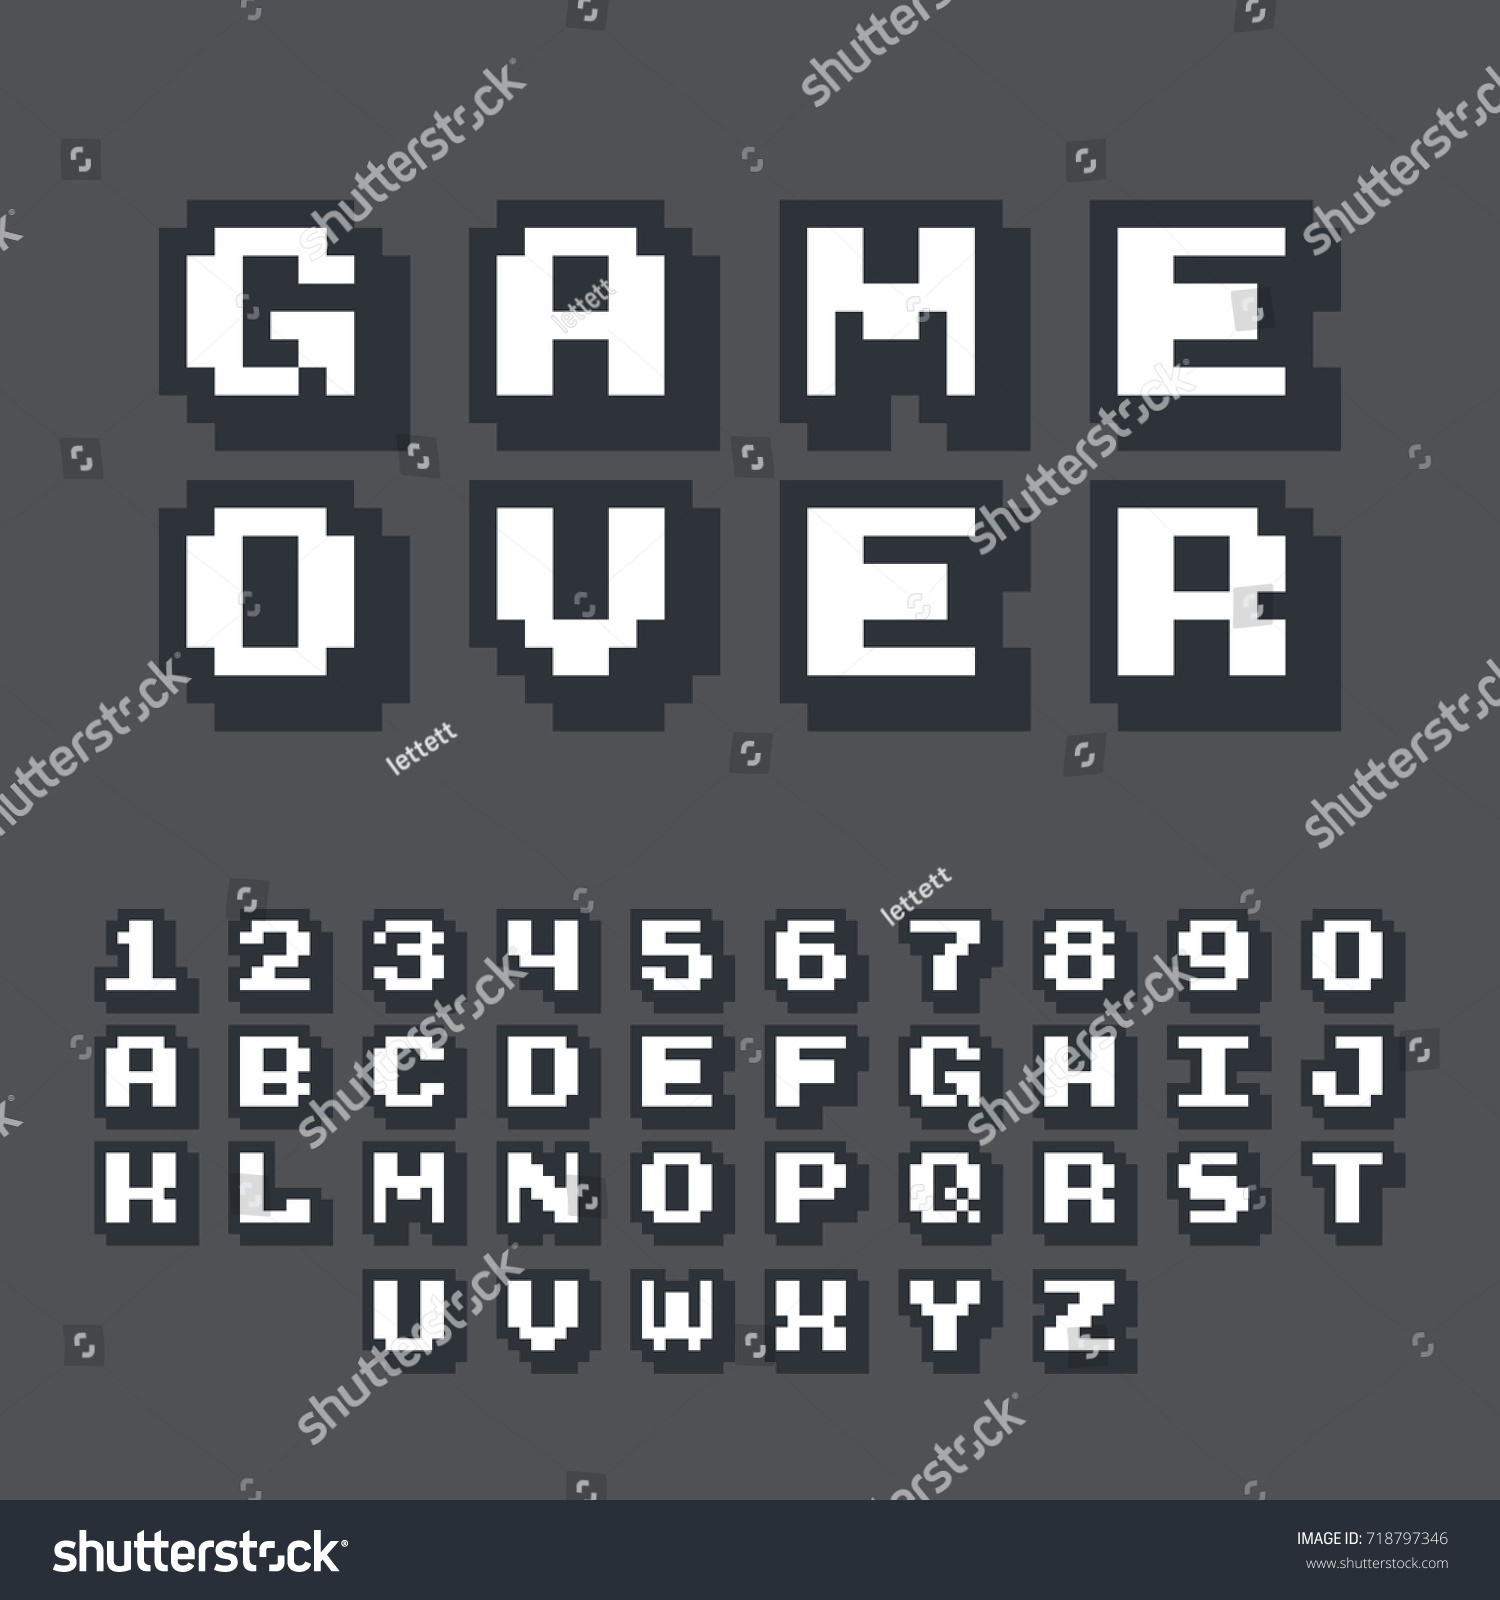 3d Pixel Video Game 8 Bit Stock Vector 718797346